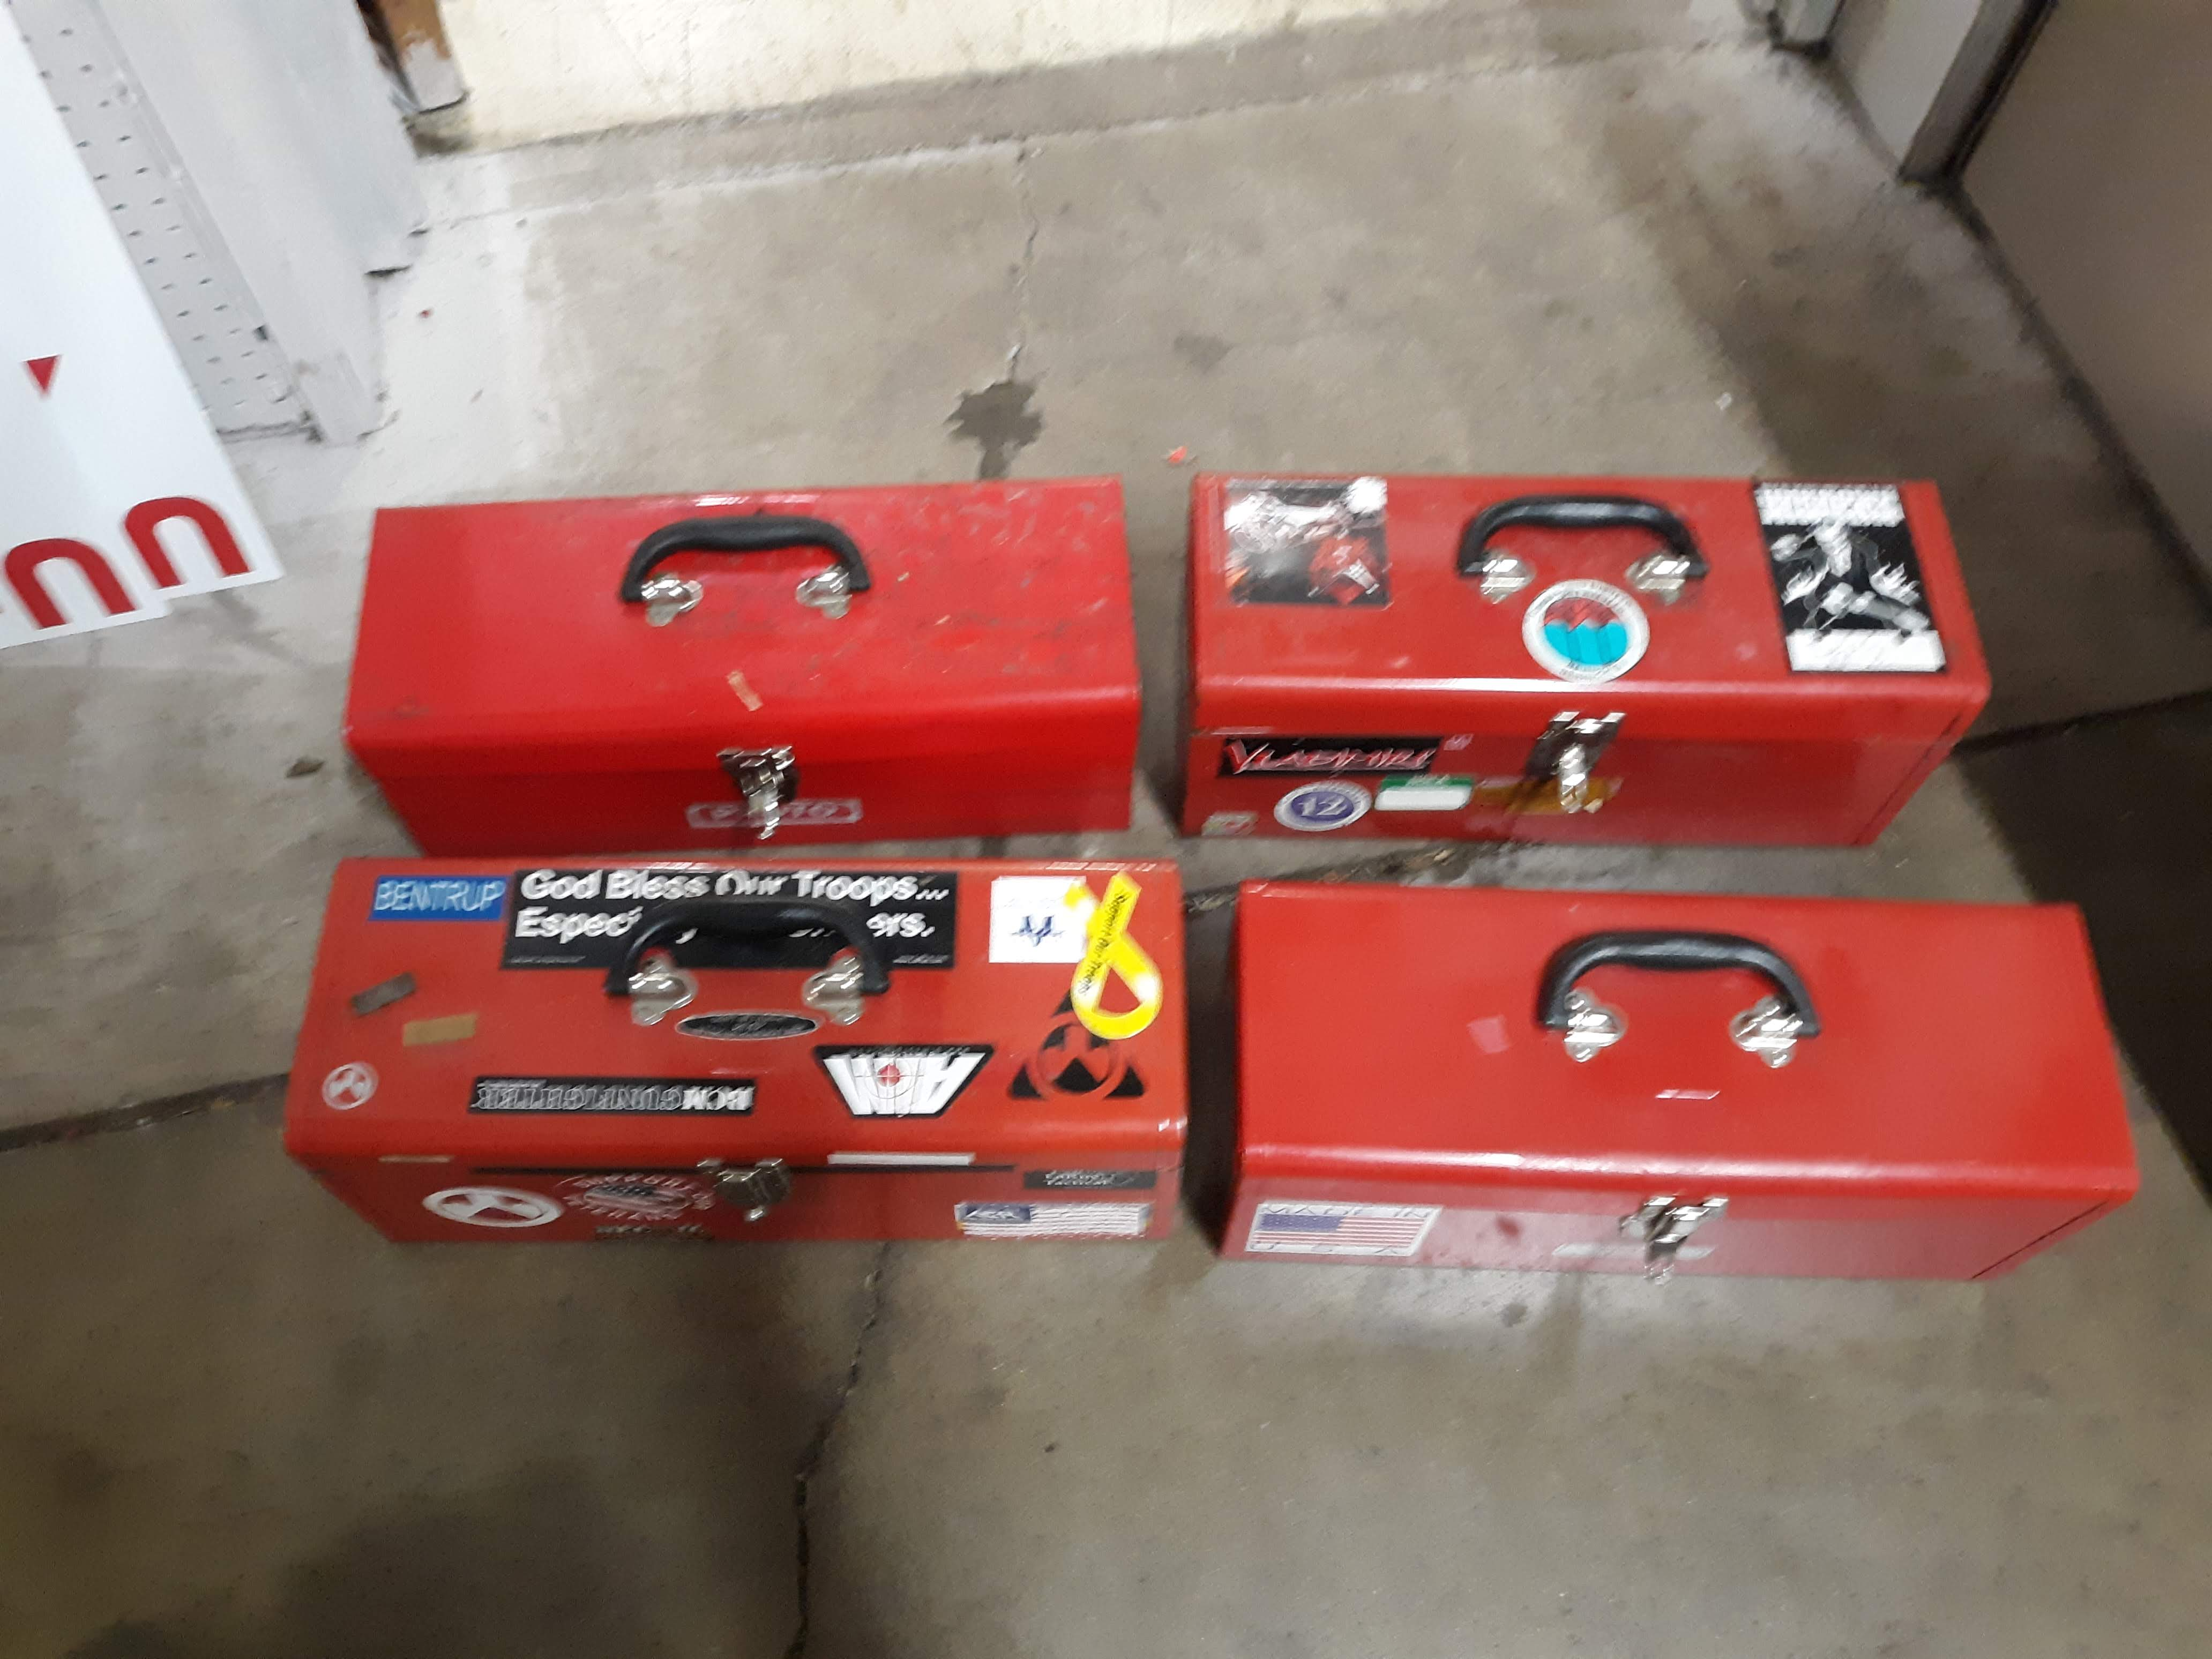 (4) TOOL BOXES (LOCATED AT: 432 COUNCIL DRIVE, FORT WAYNE, IN 46825) - Image 2 of 3